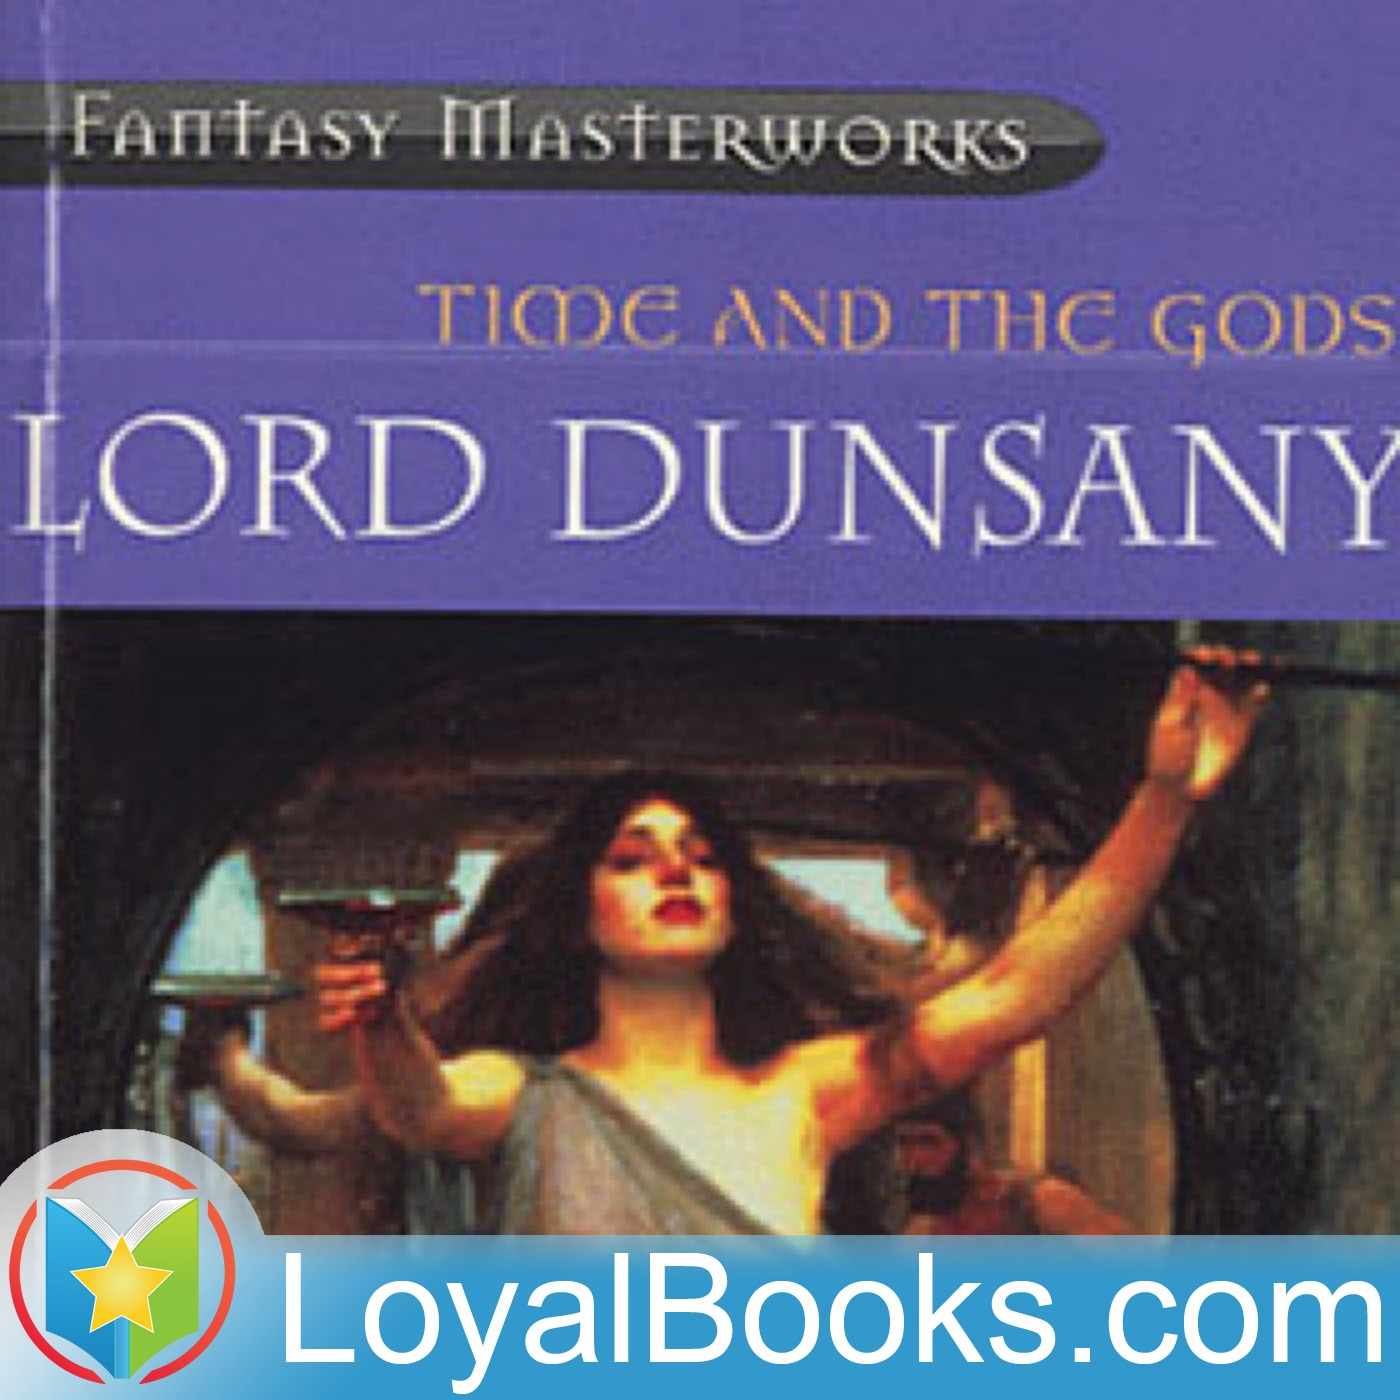 <![CDATA[Time and the Gods by Lord Dunsany ]]>